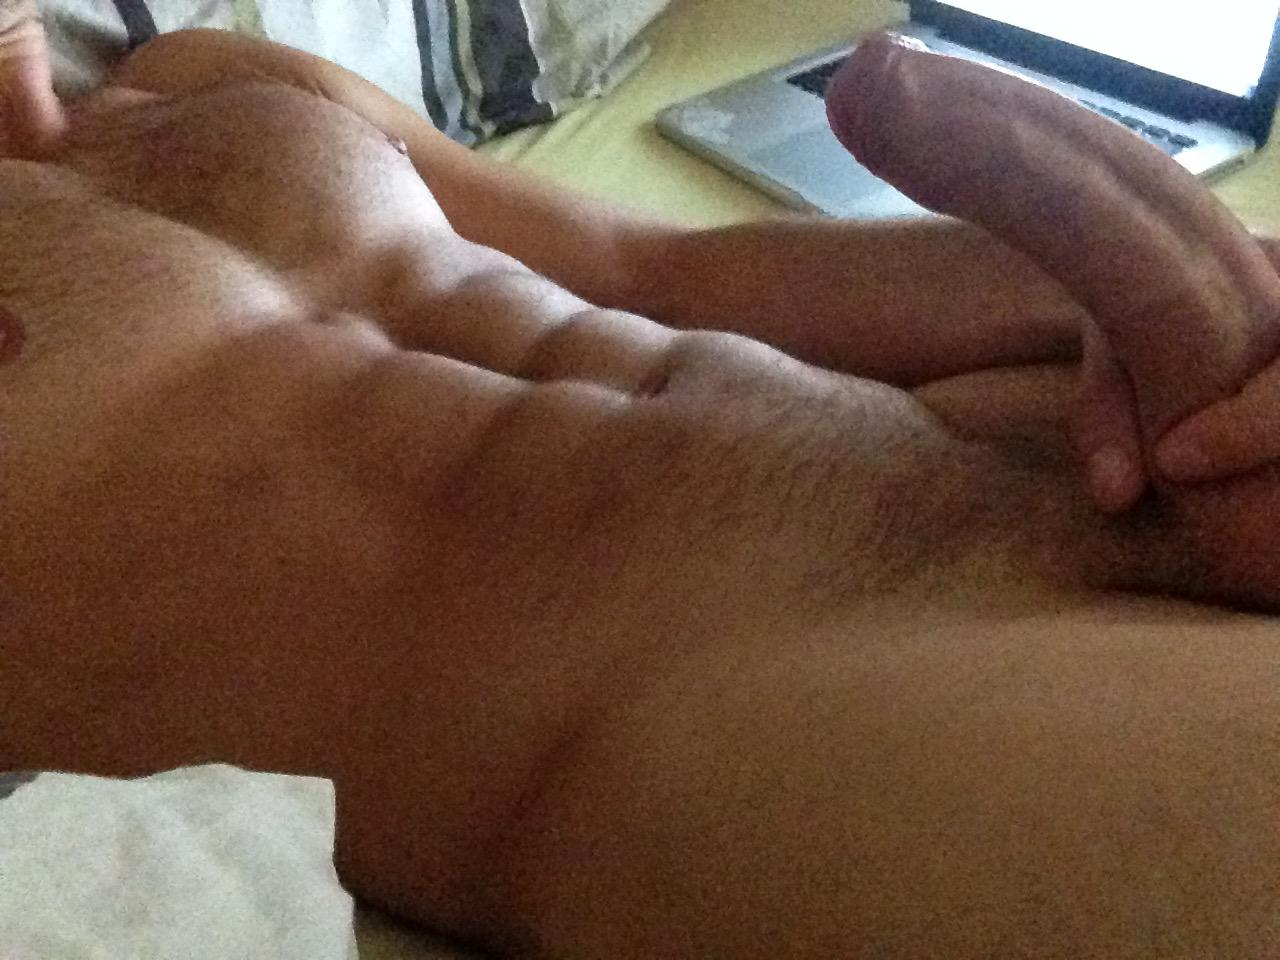 Gay boys tight foreskin doctors exams clips 10